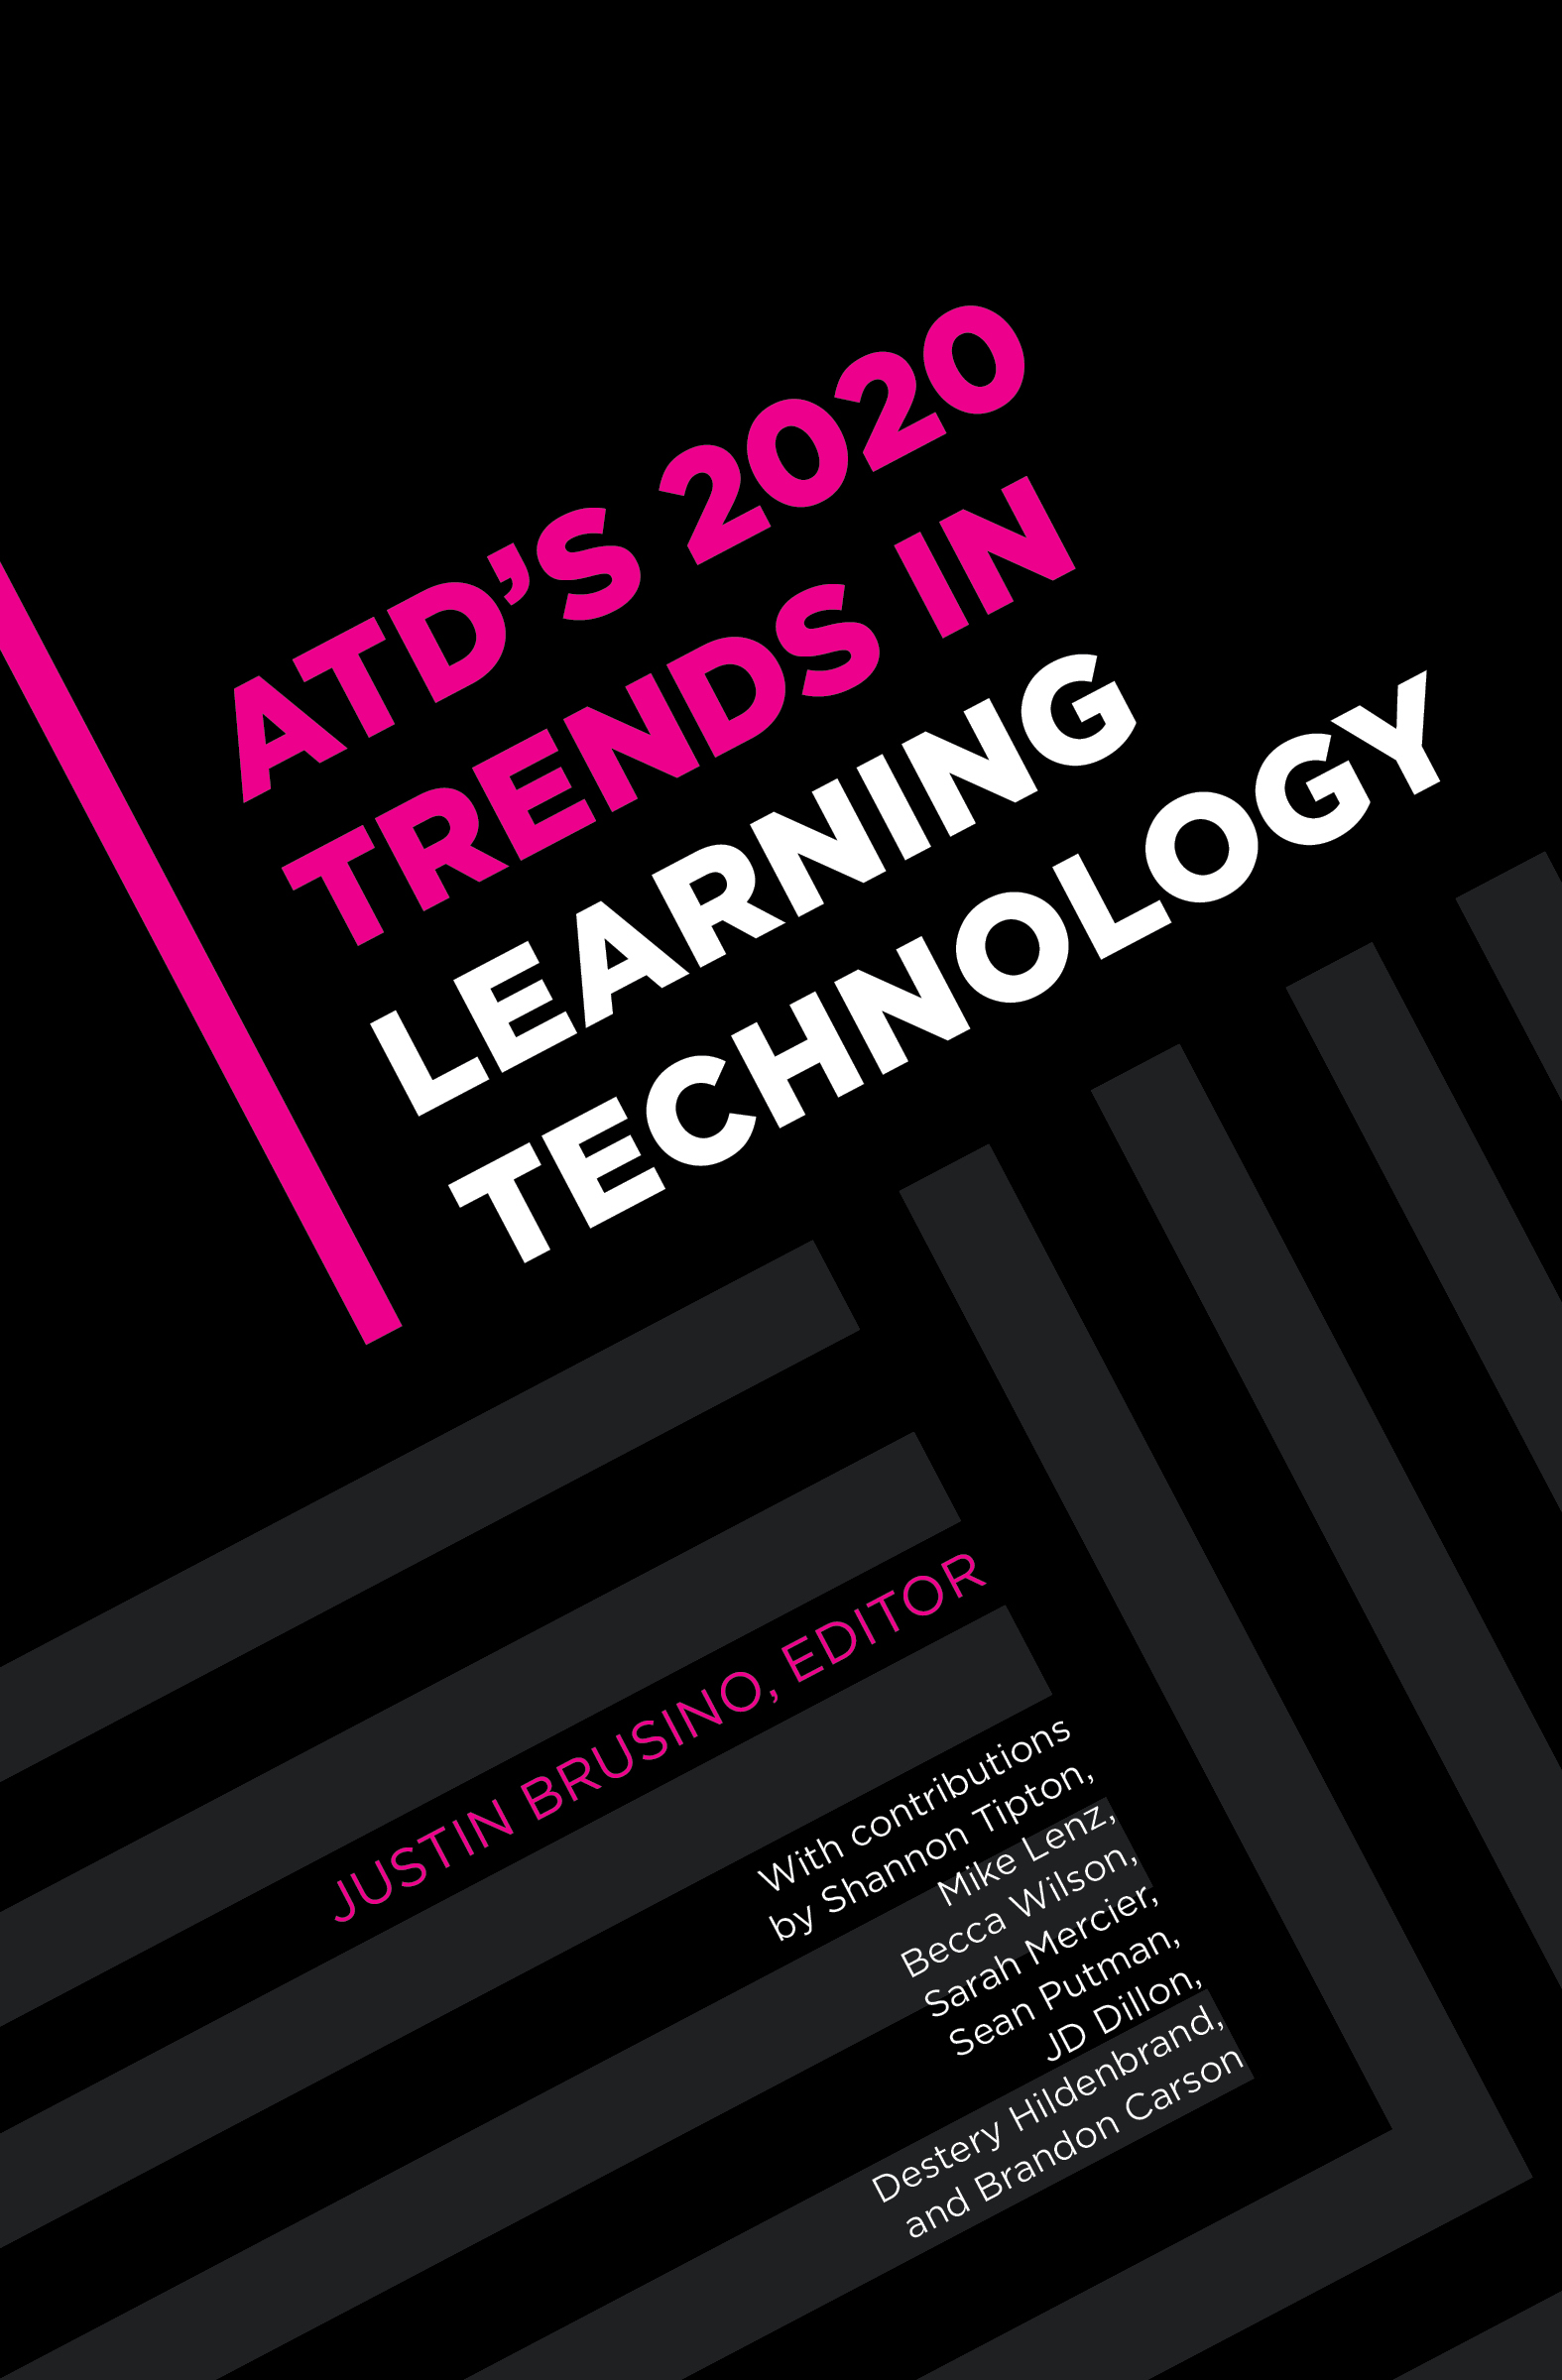 Atd S 2020 Trends In Learning Technology